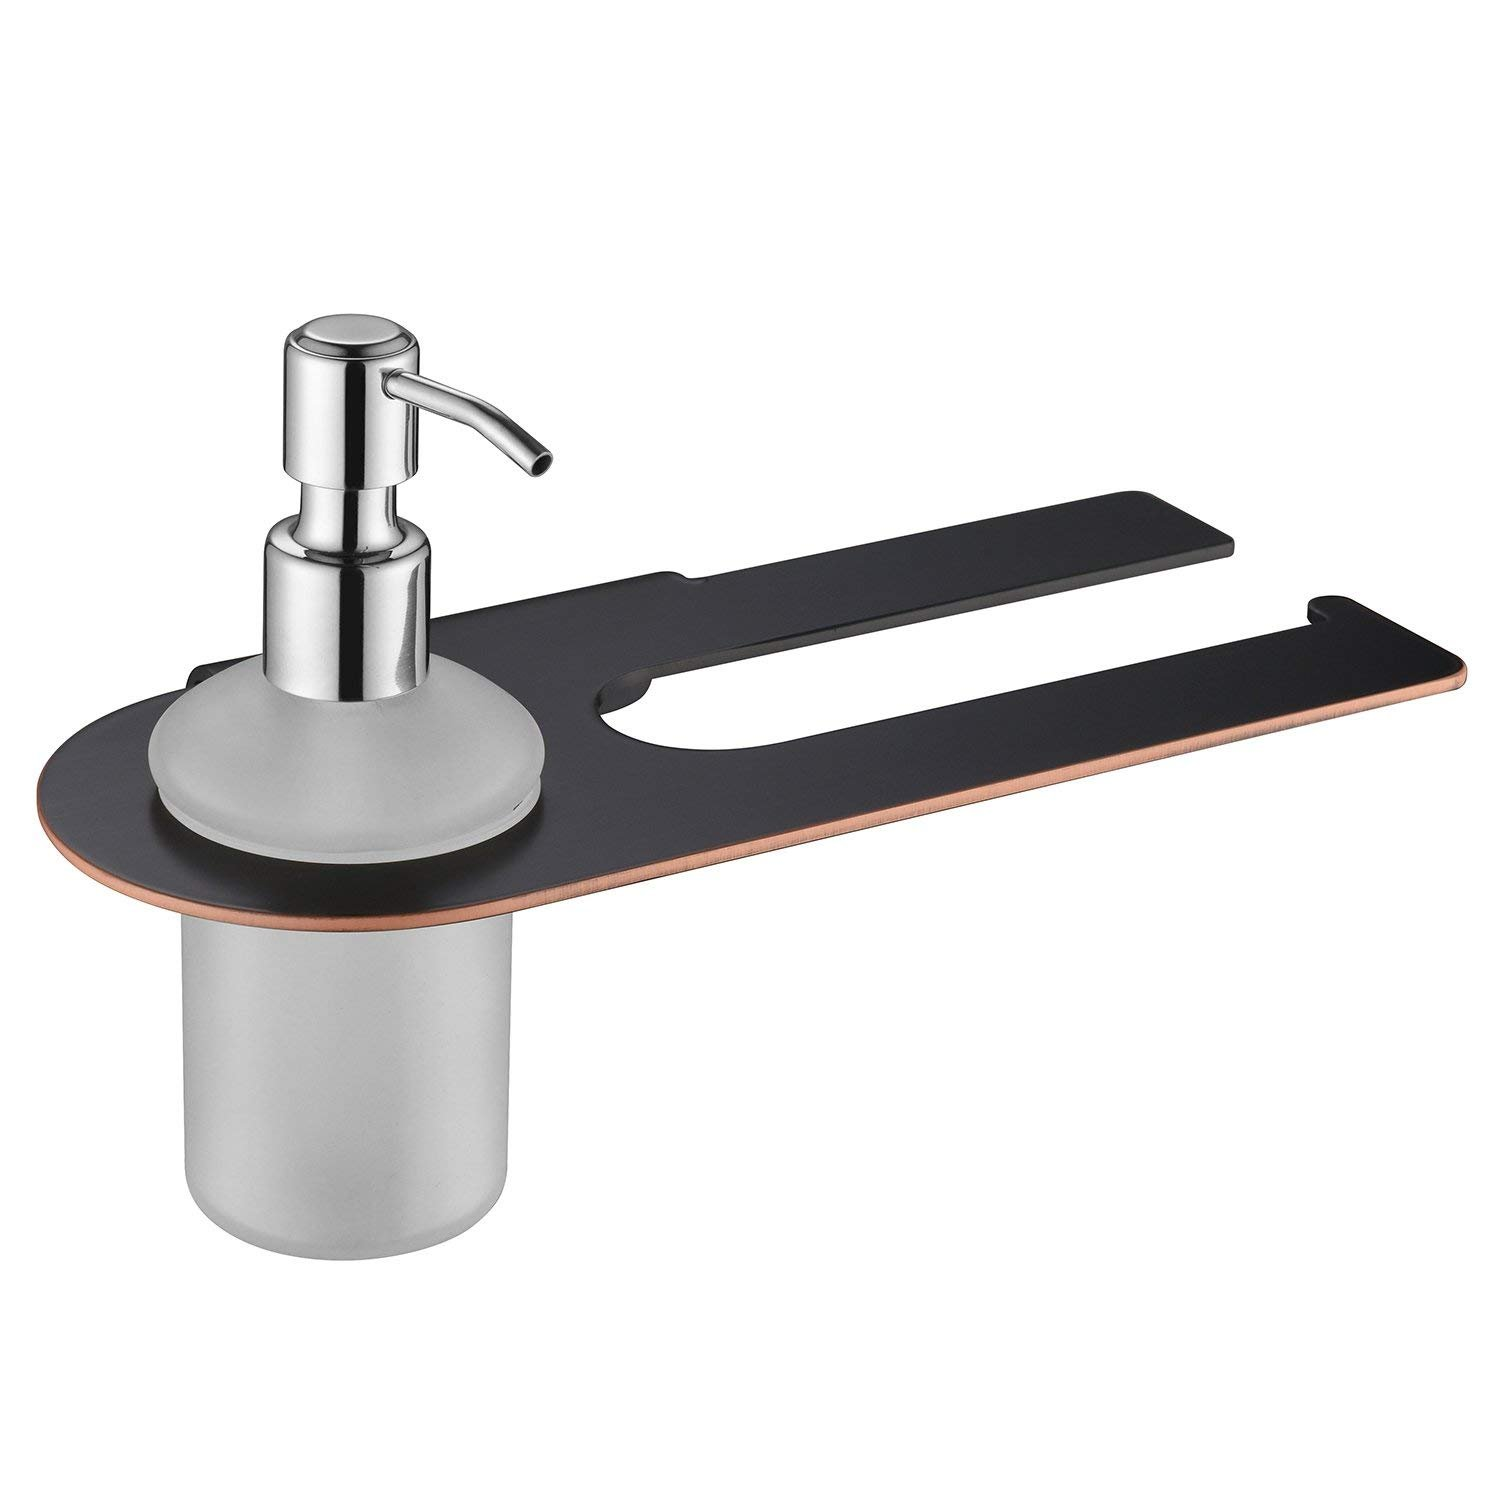 Aothpher Bulk Liquid Refillable Soap Dispenser with Towel Bar Towel Holder Bathroom Hotel Accessories Wall Mounted,Stainless Steel/Matte Black